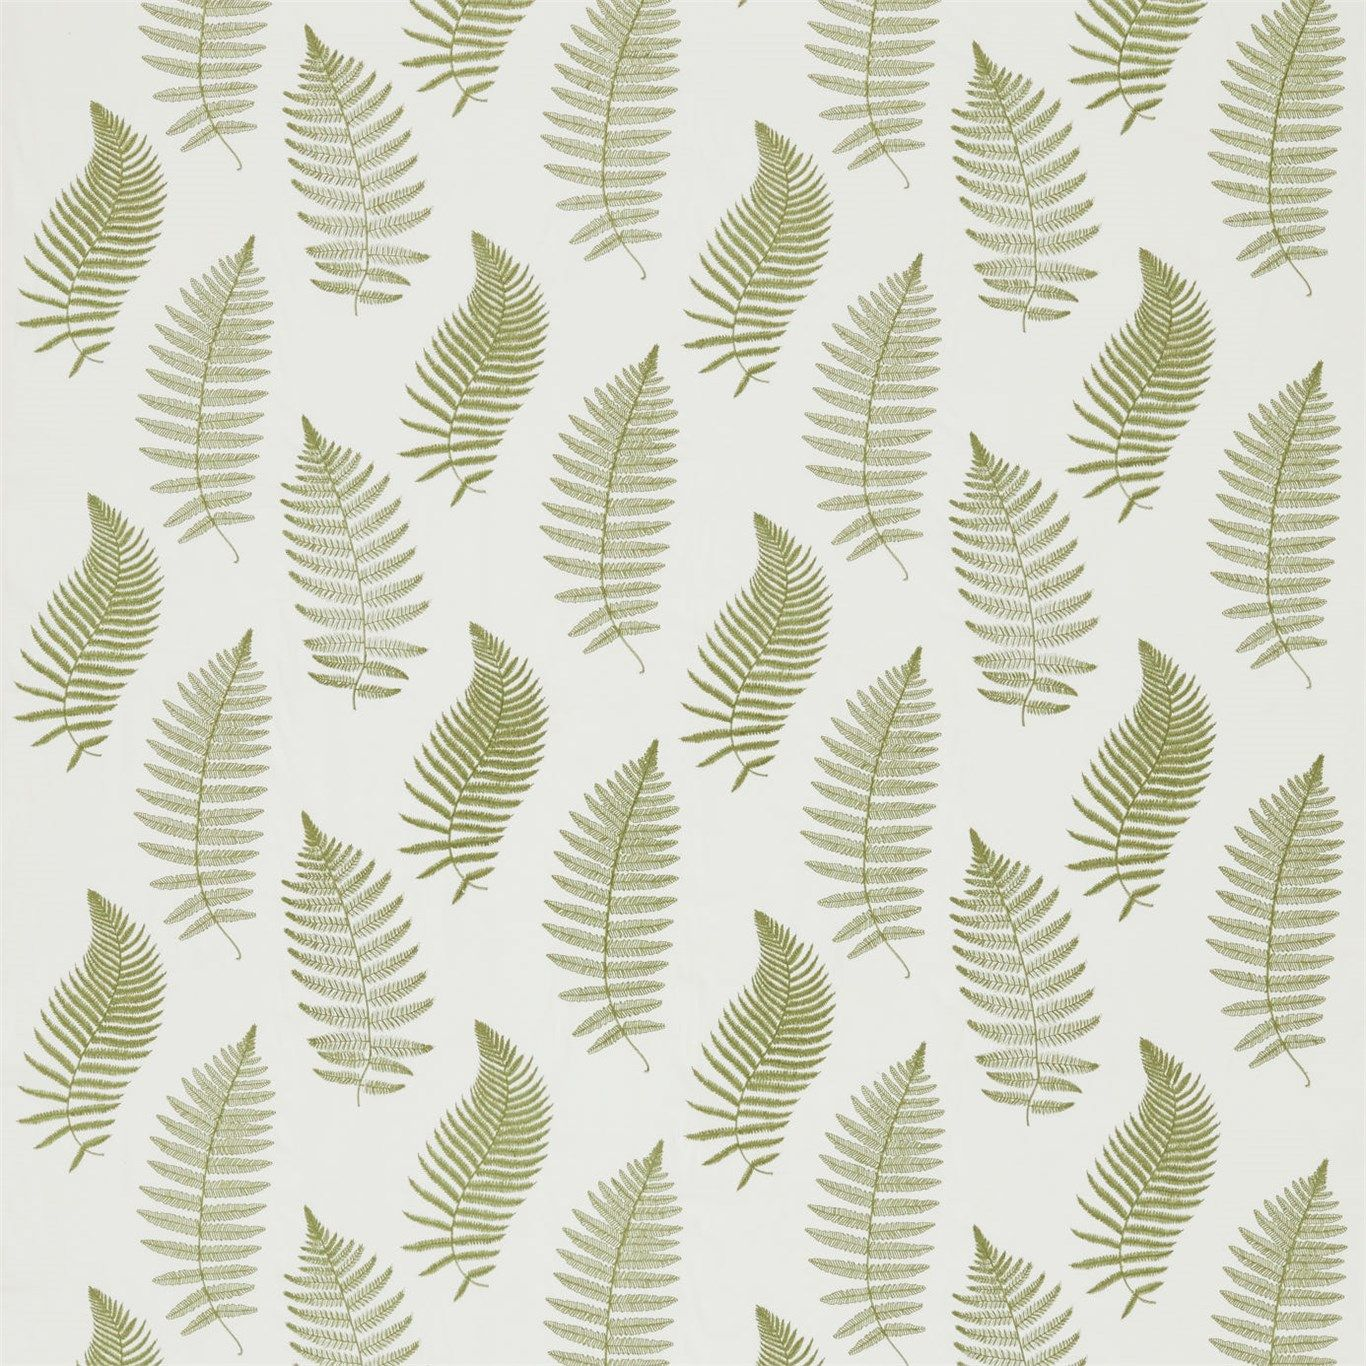 FABRIC: Fern Embroidery - Sanderson - Traditional to contemporary ...